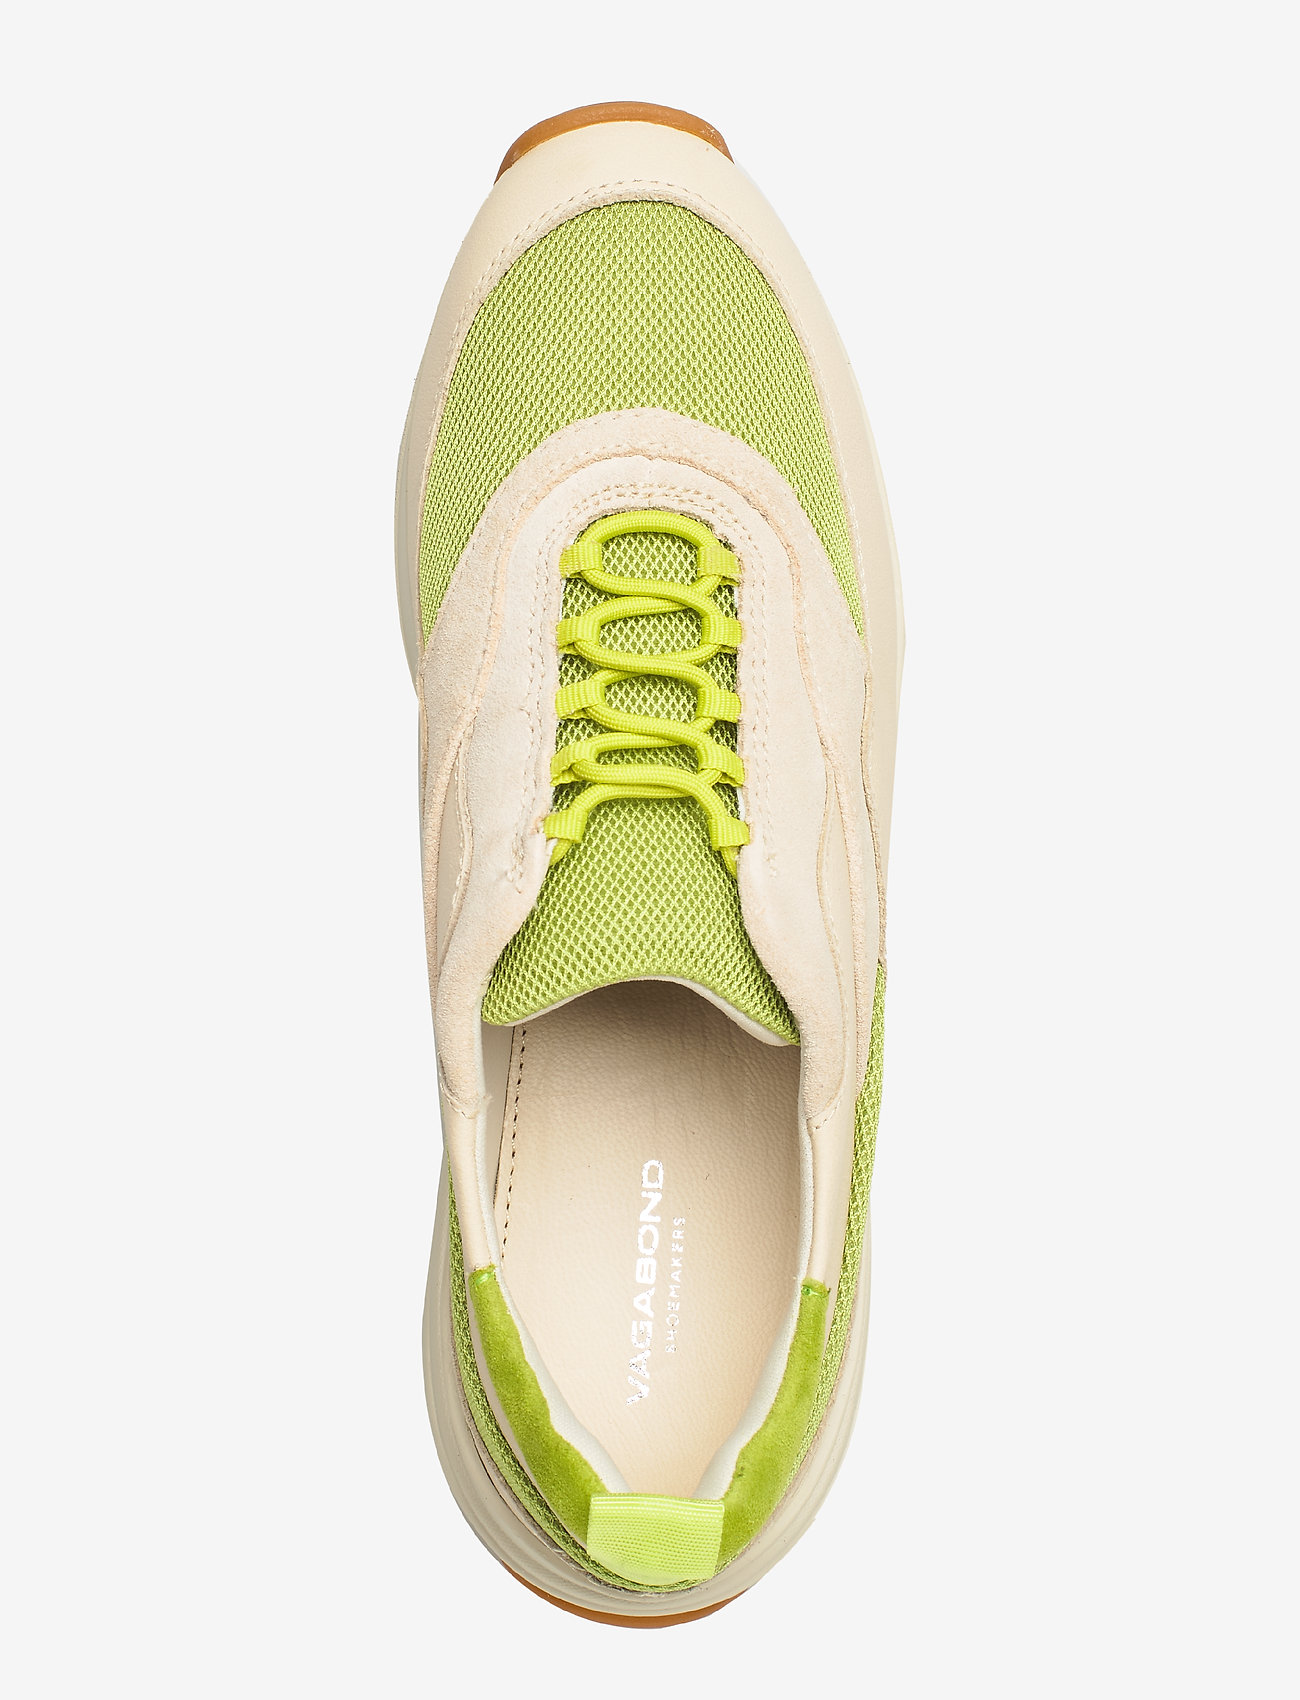 Sprint 2.0 (Off White/lime) (449.50 kr) - VAGABOND